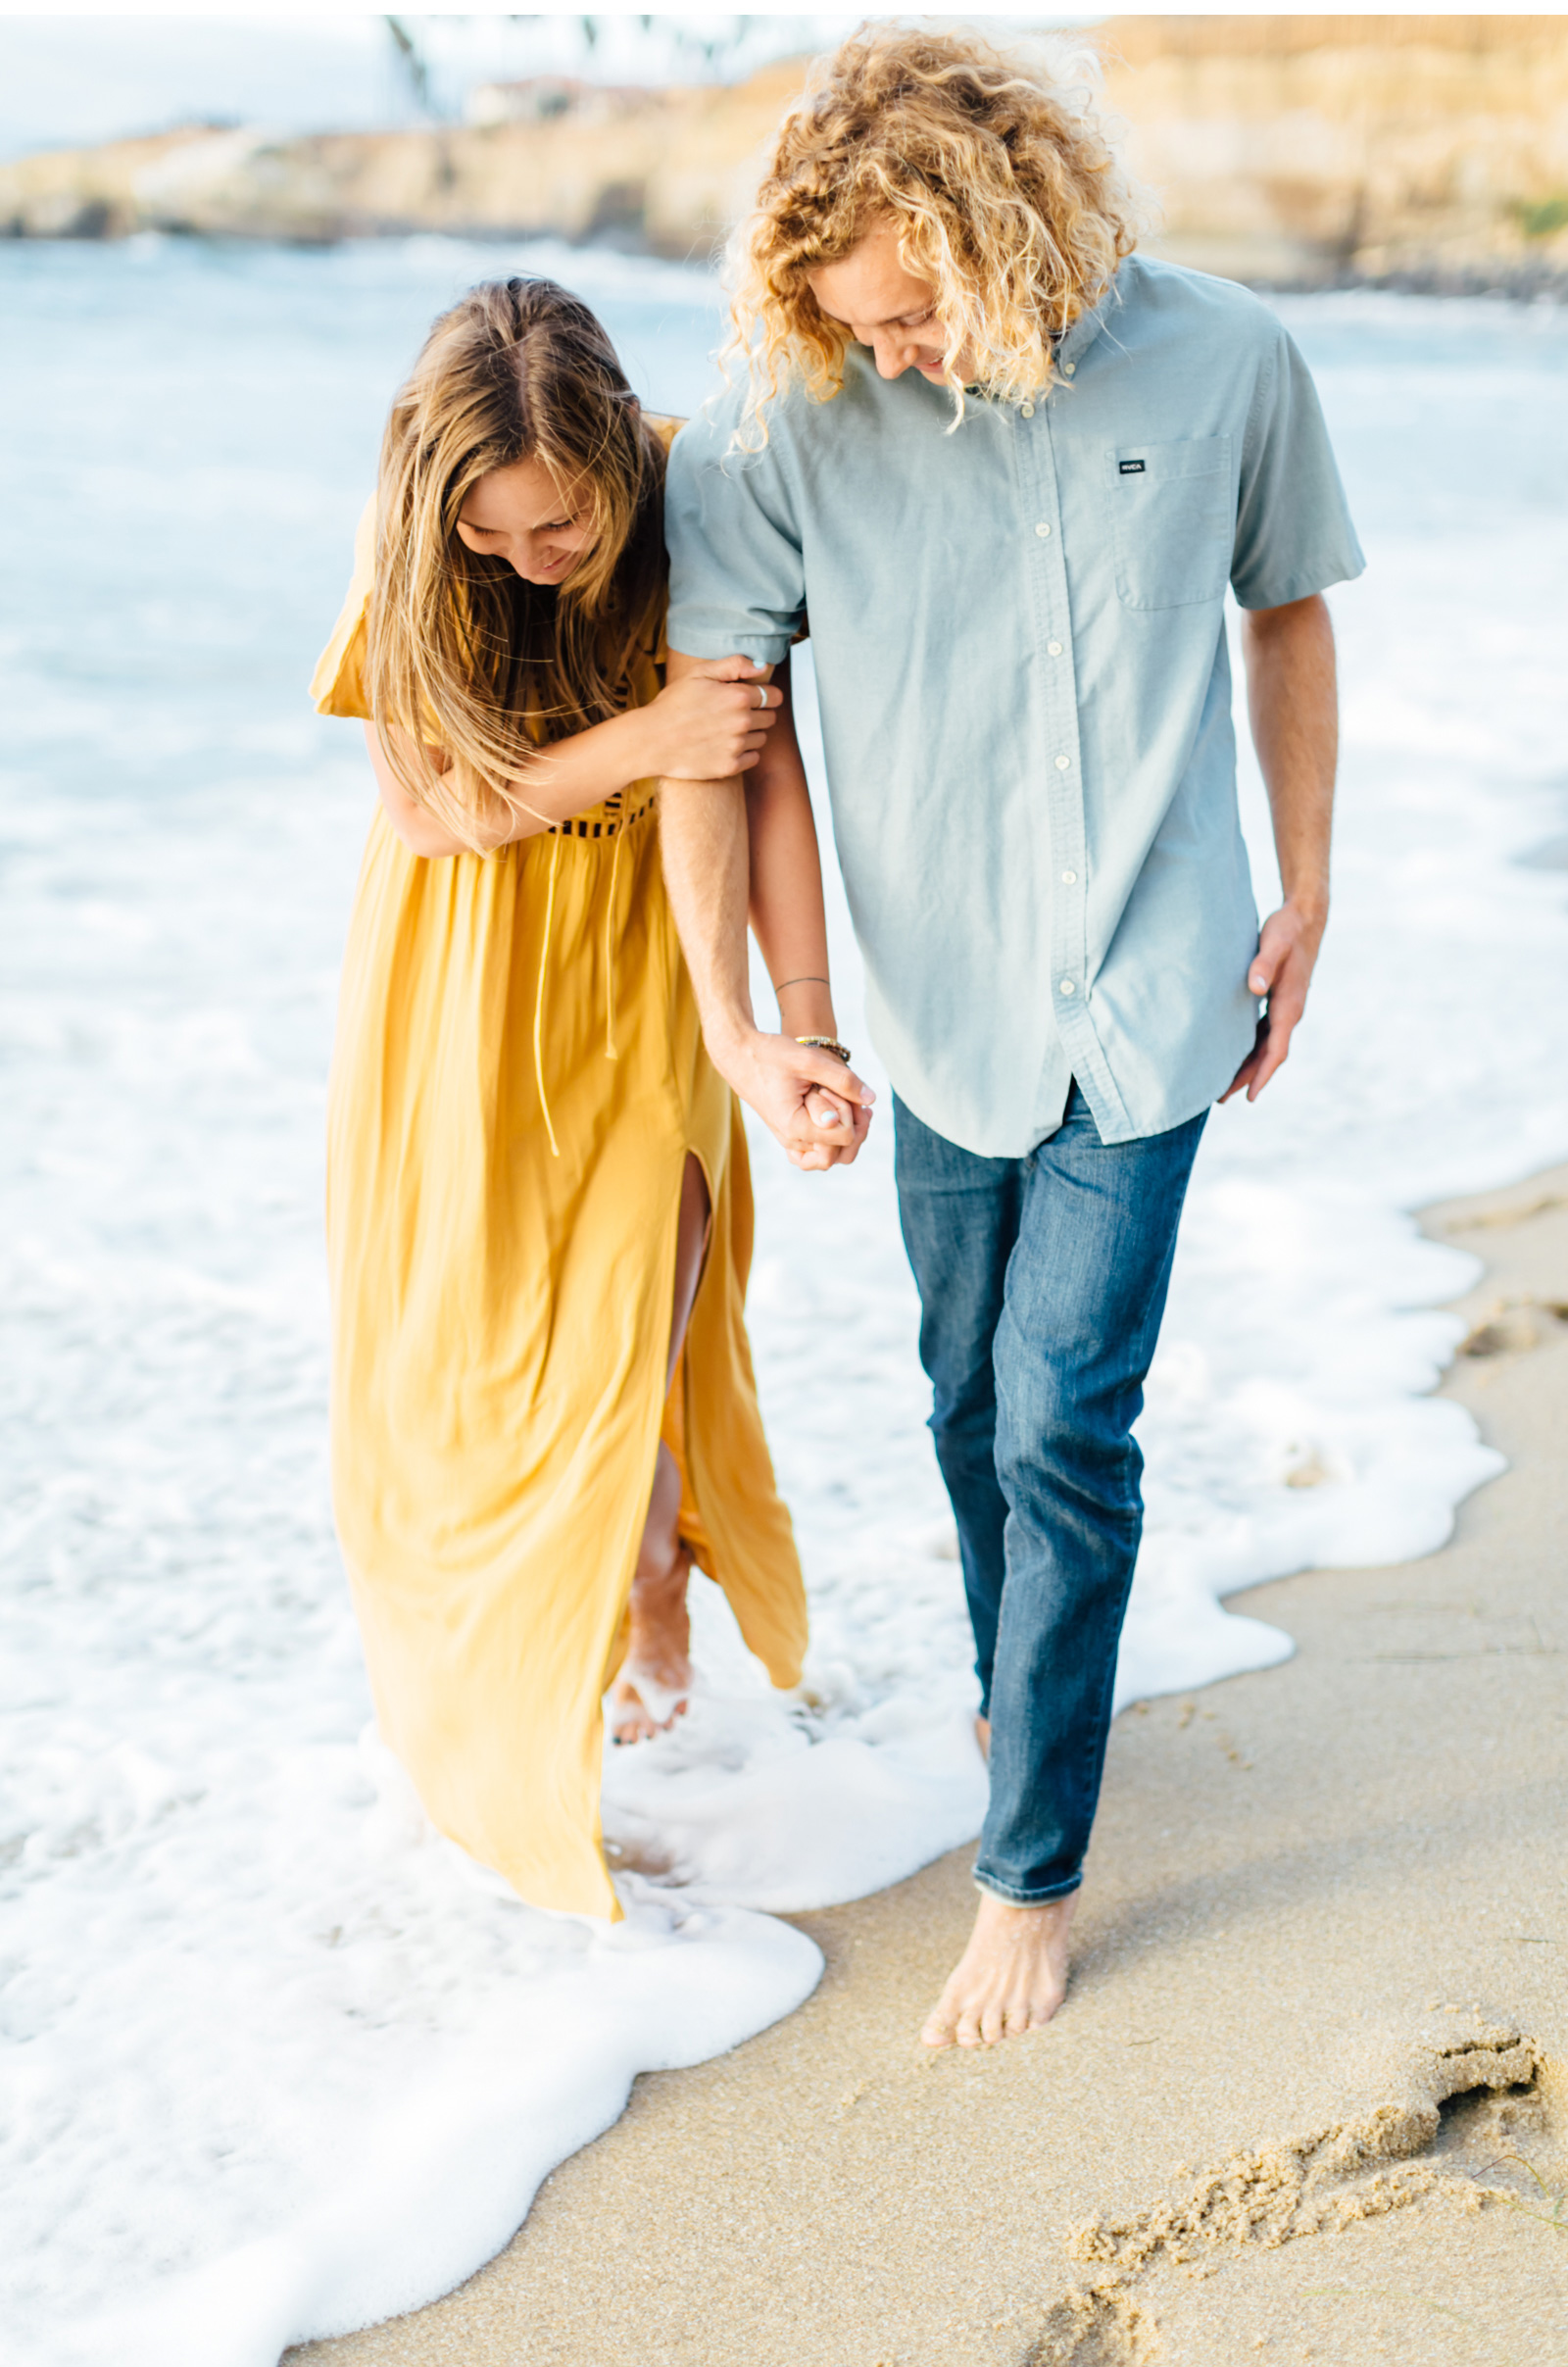 Southern-California-Engagement-Photographer-Natalie-Schutt-Photography_06.jpg